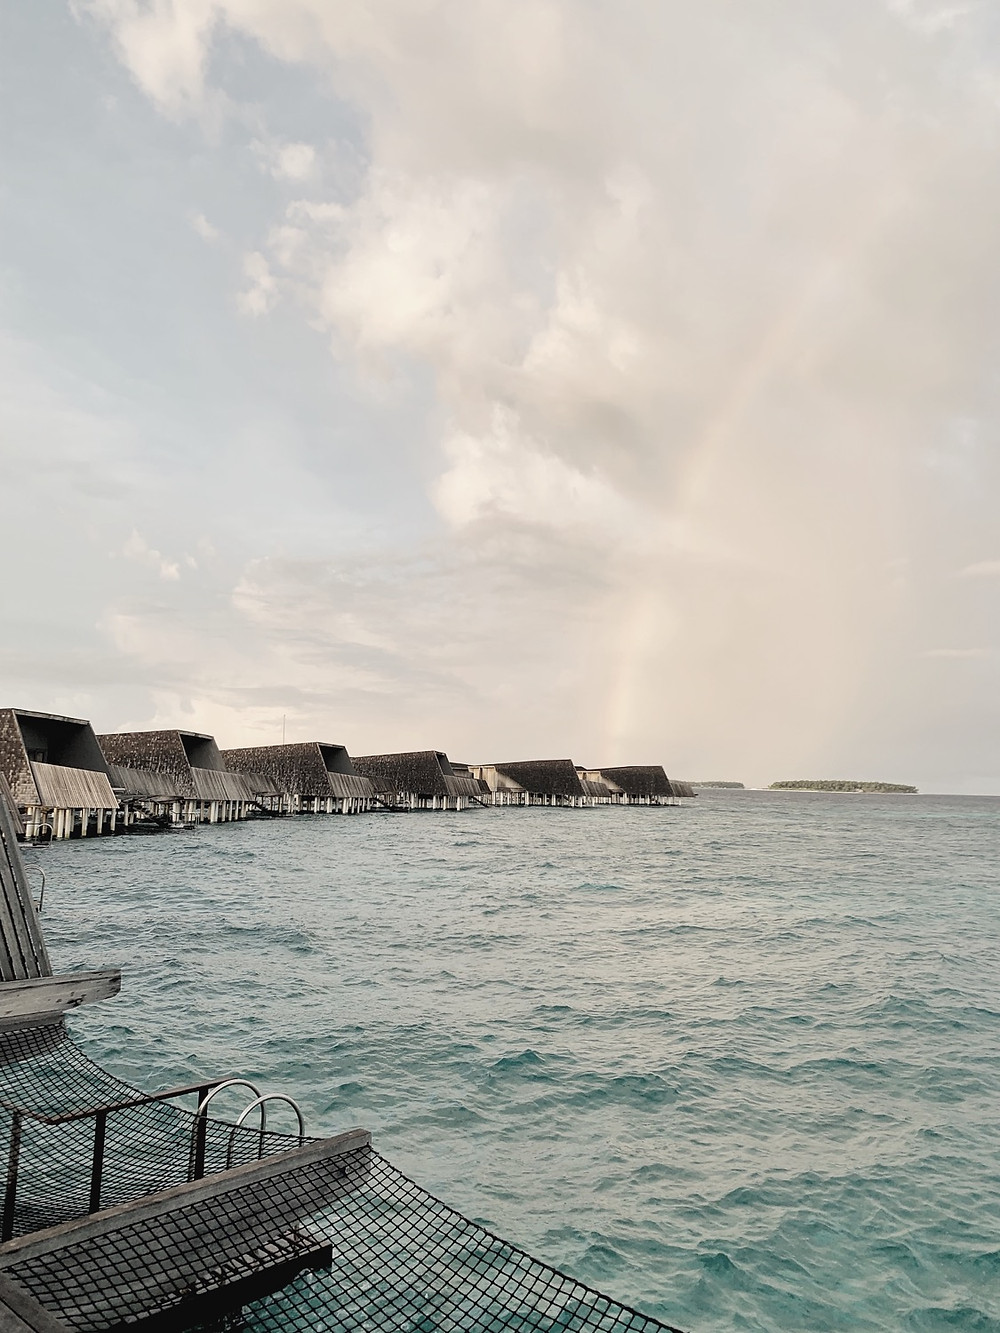 Maldives in May: Rainbow after Rainshower